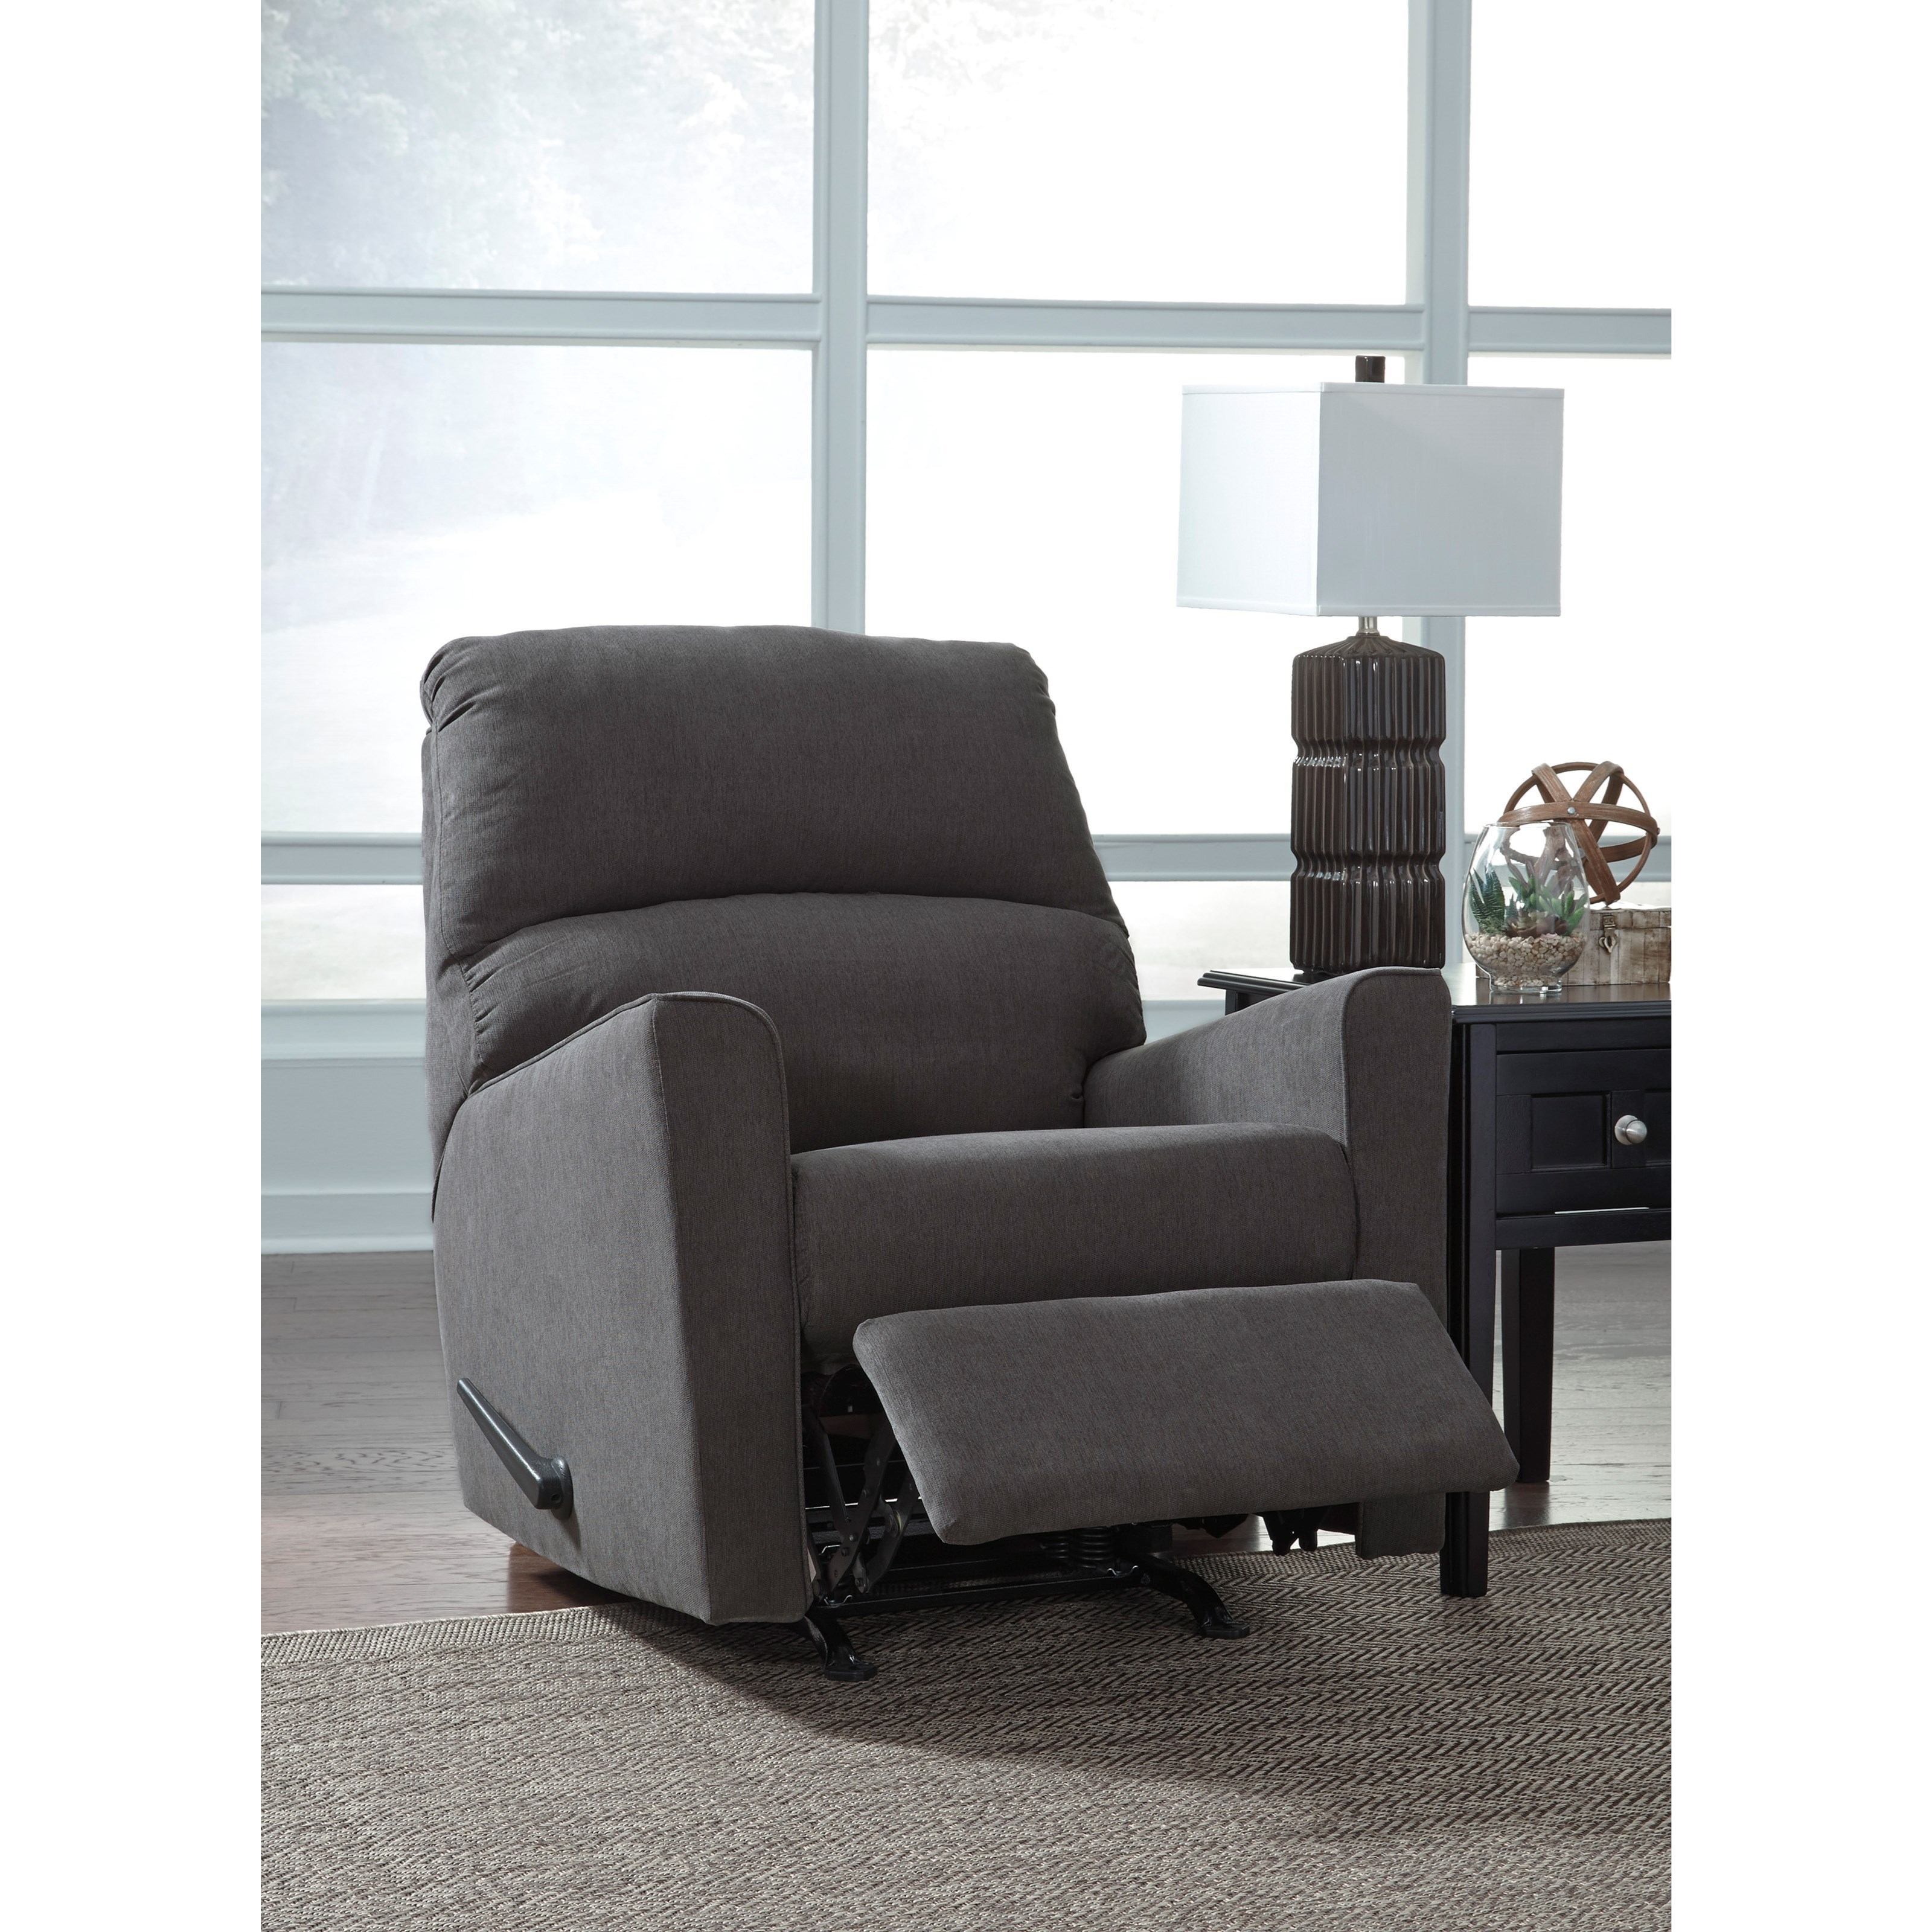 Furniture Store For Sale: Contemporary Rocker Recliner By Signature Design By Ashley